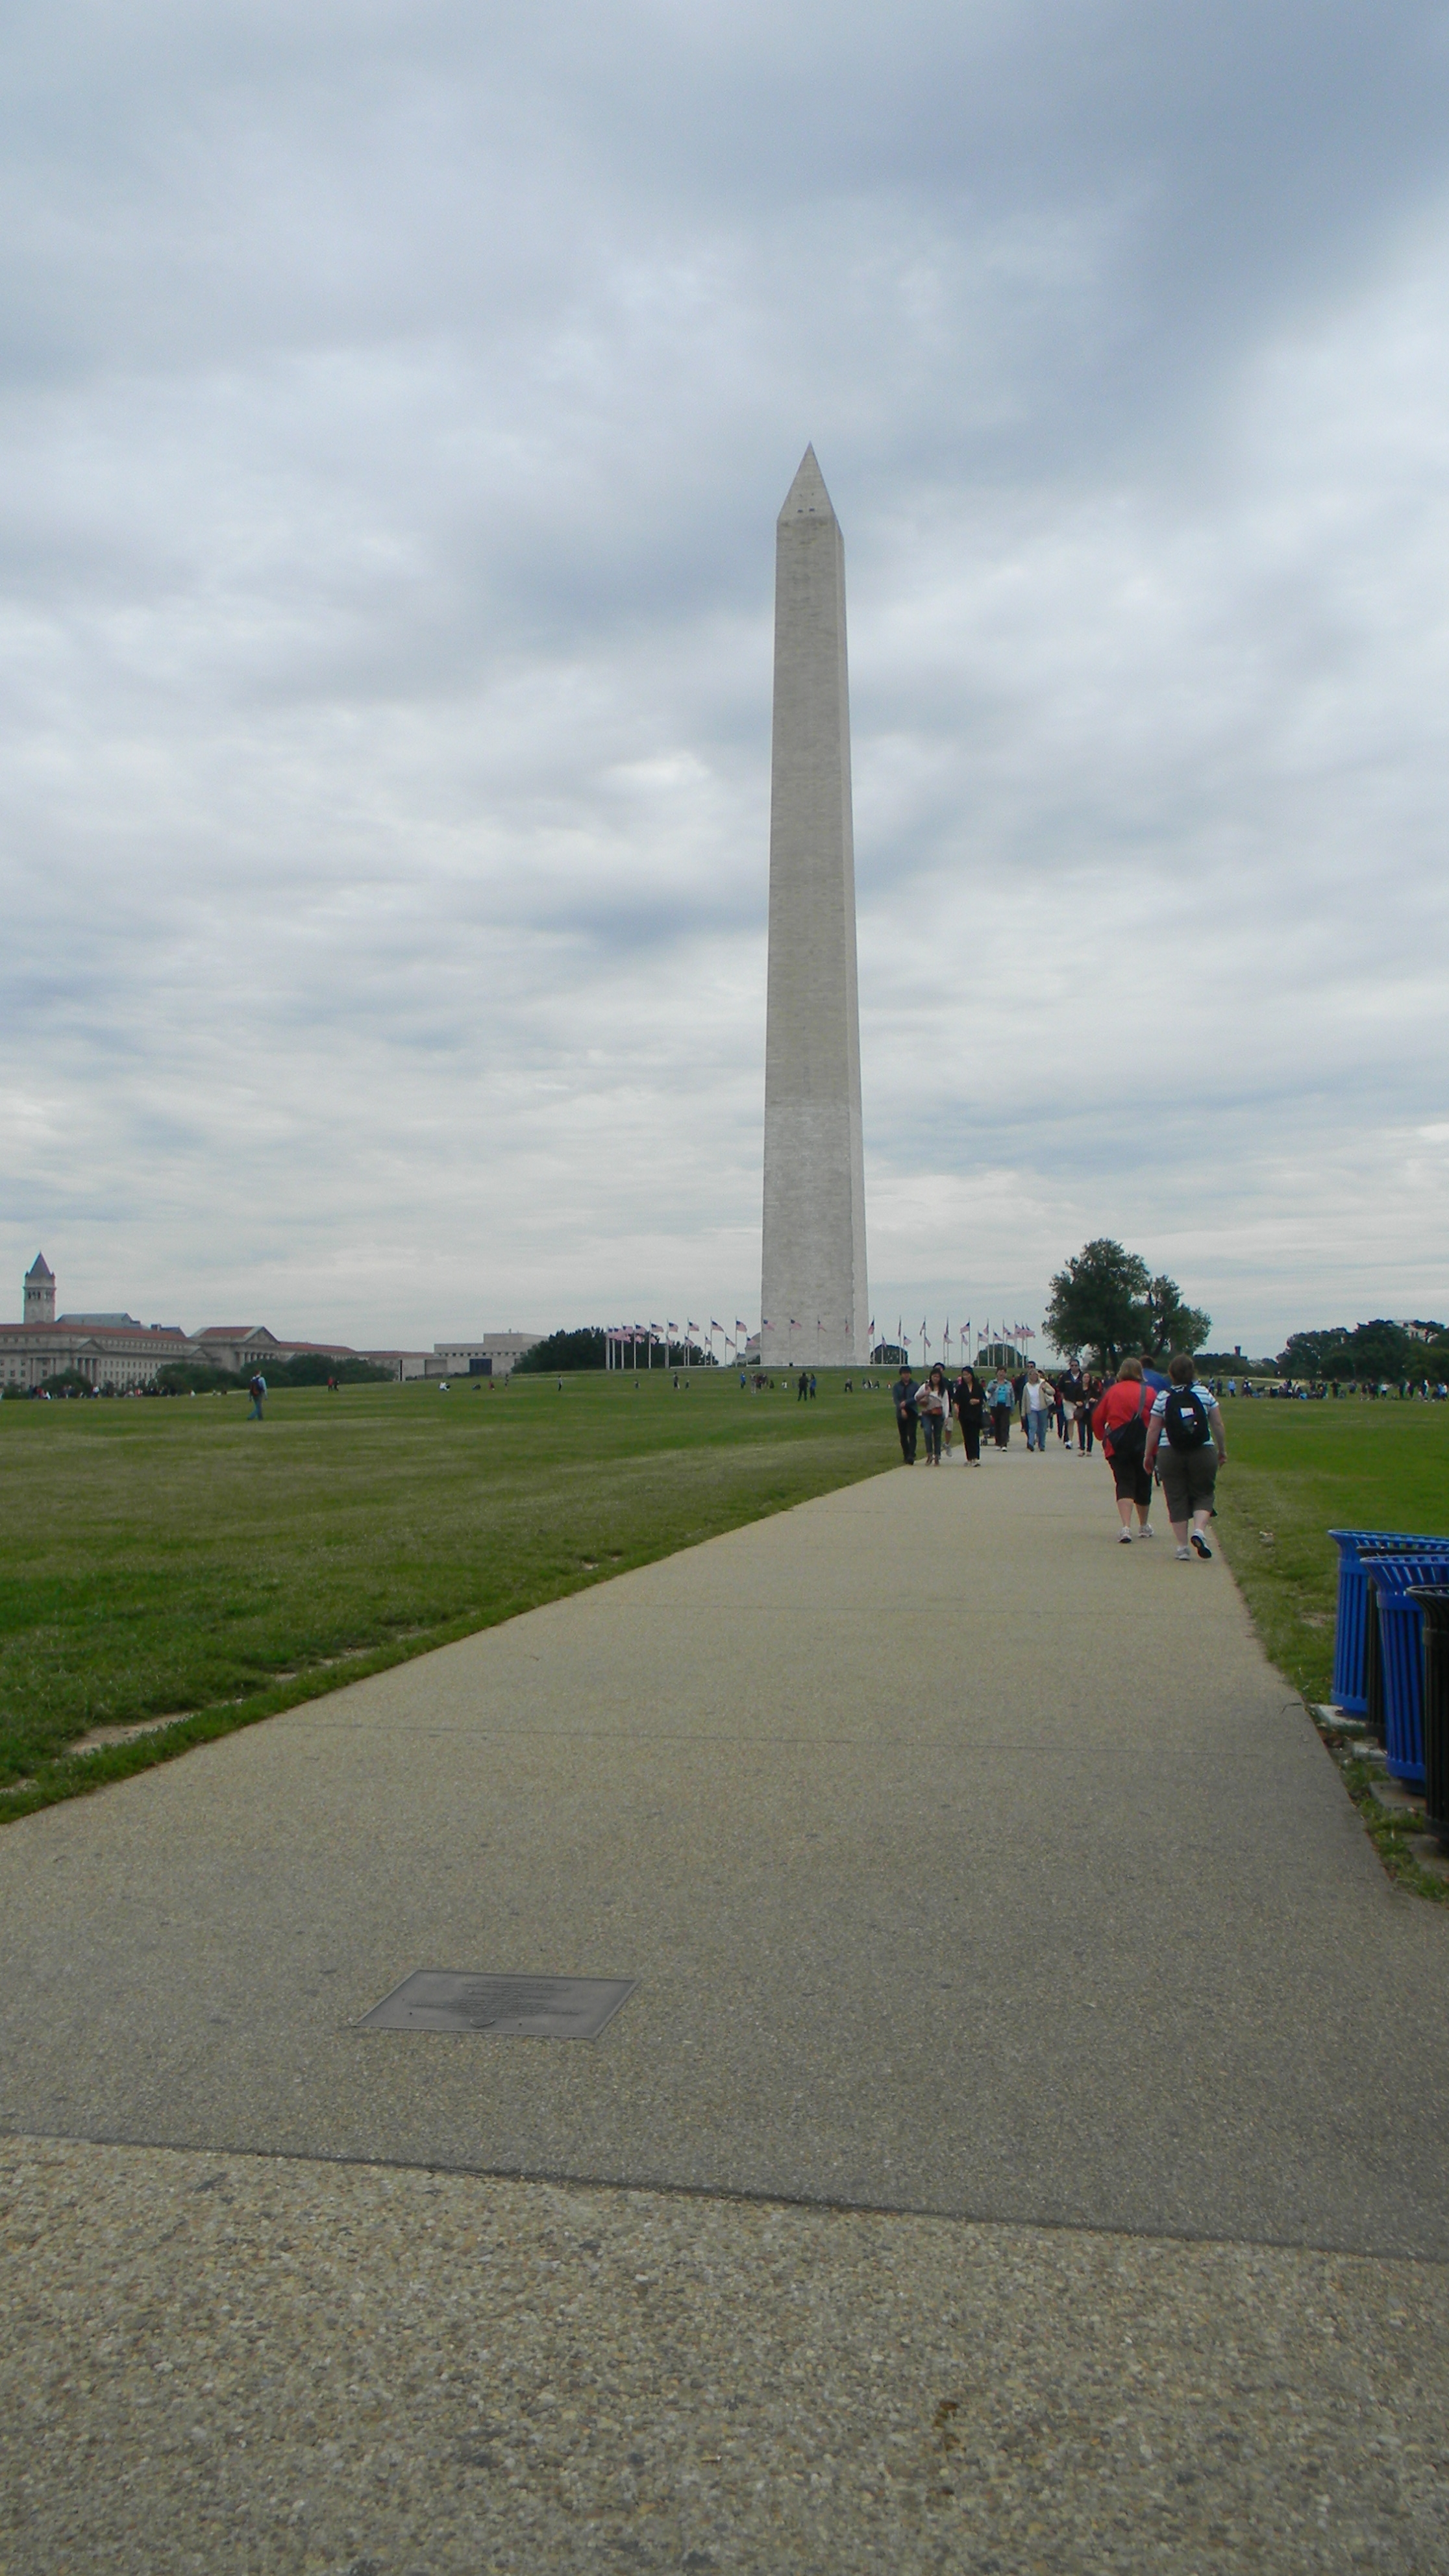 Washington Monument - marker visible in the walkway, lower left